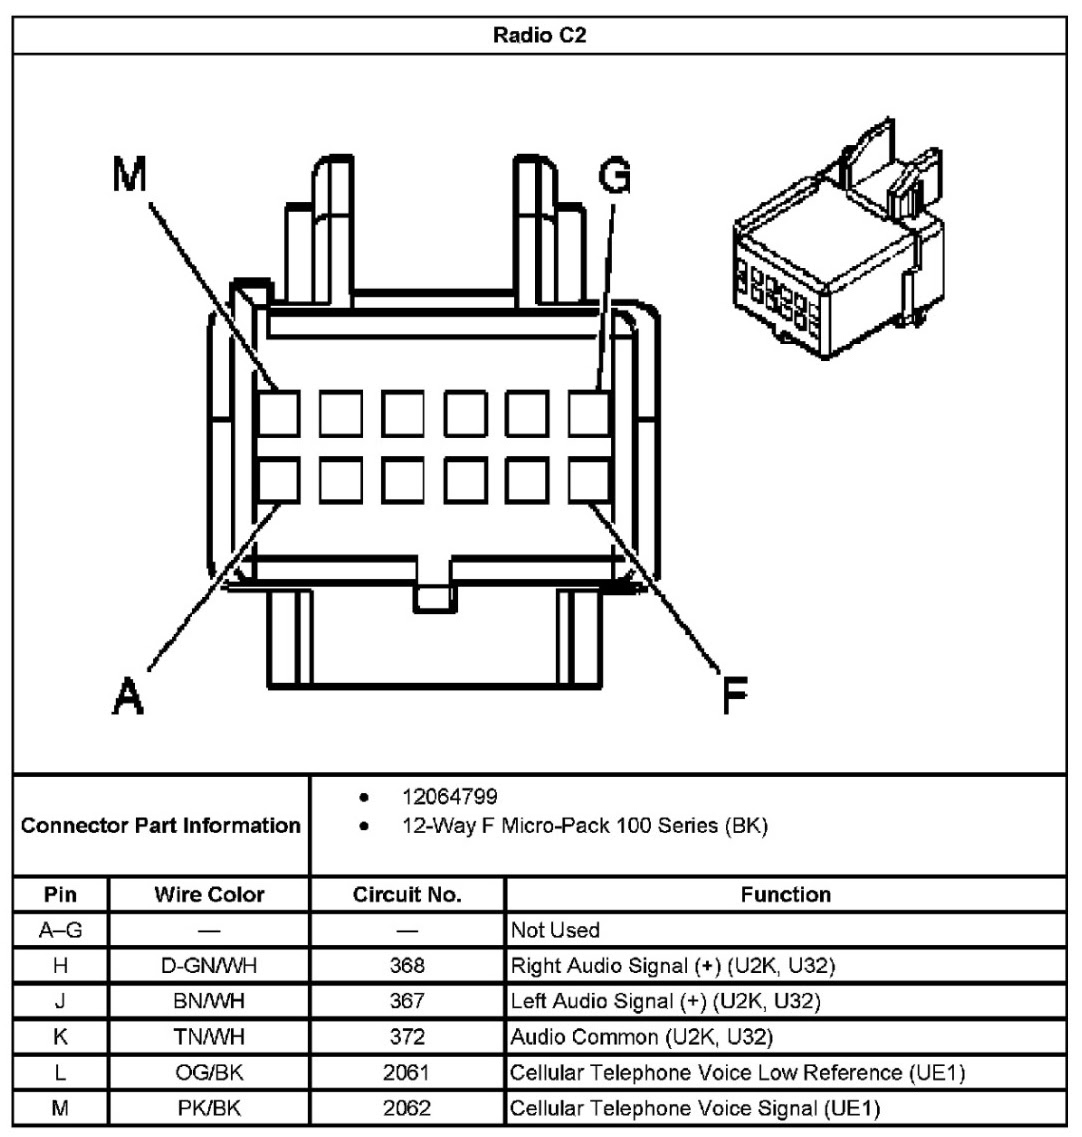 2005 Chevy Cavalier Stereo Wiring Diagram from lh6.googleusercontent.com